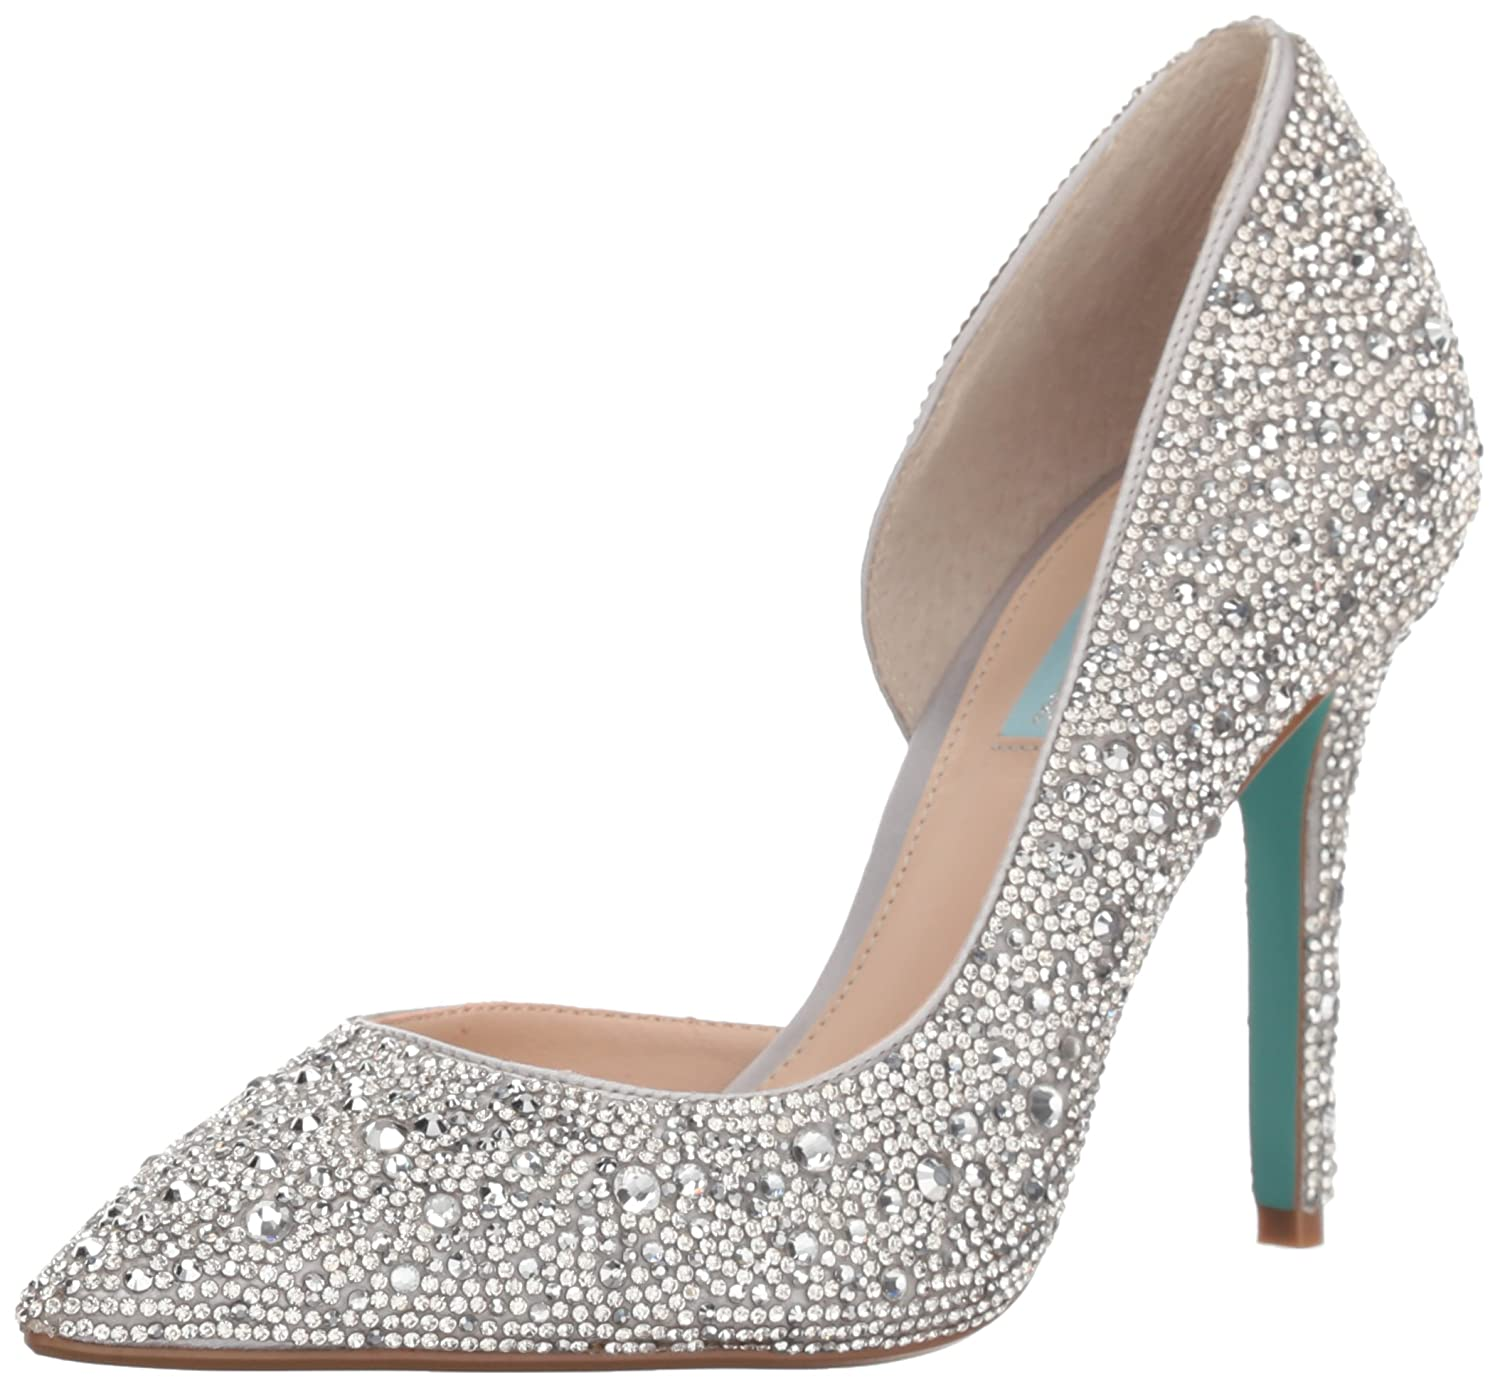 Blue by Betsey Johnson Women's Sb-Hazil Pump B078K9KWVN 9 M US|Silver Satin